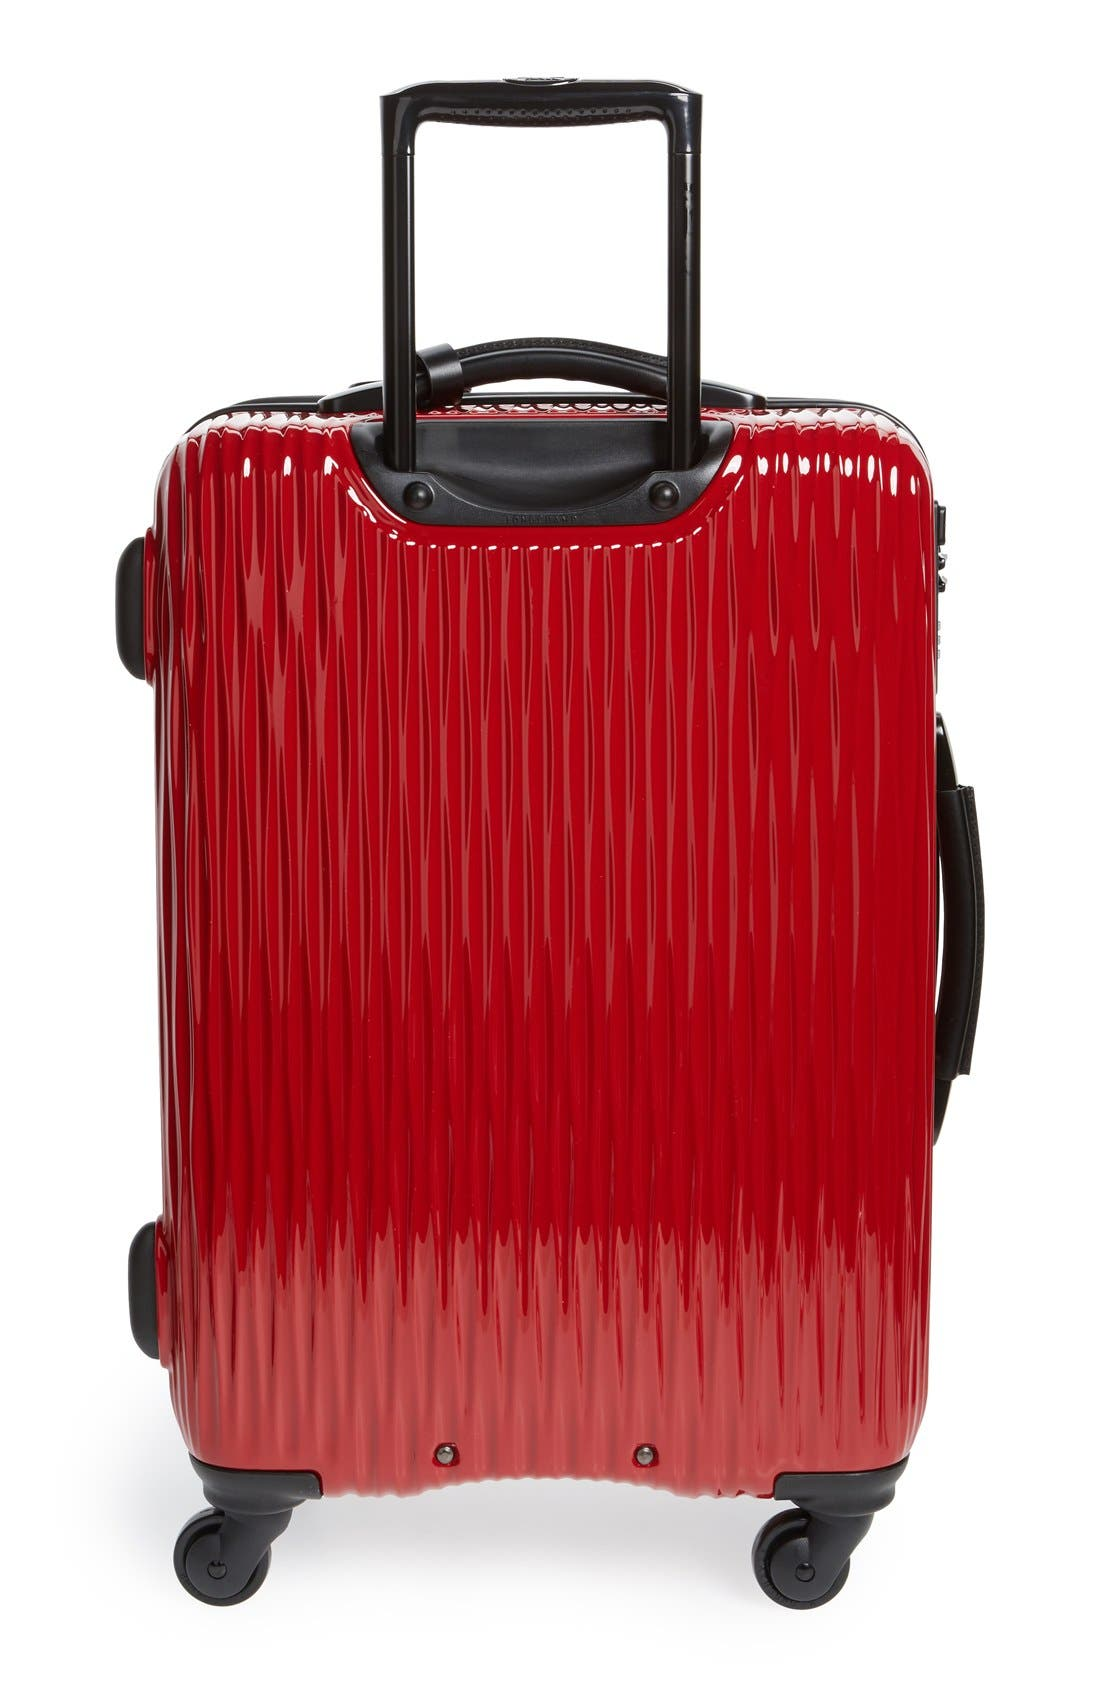 'Fairval' Four-Wheeled Hard Shell Suitcase,                             Alternate thumbnail 6, color,